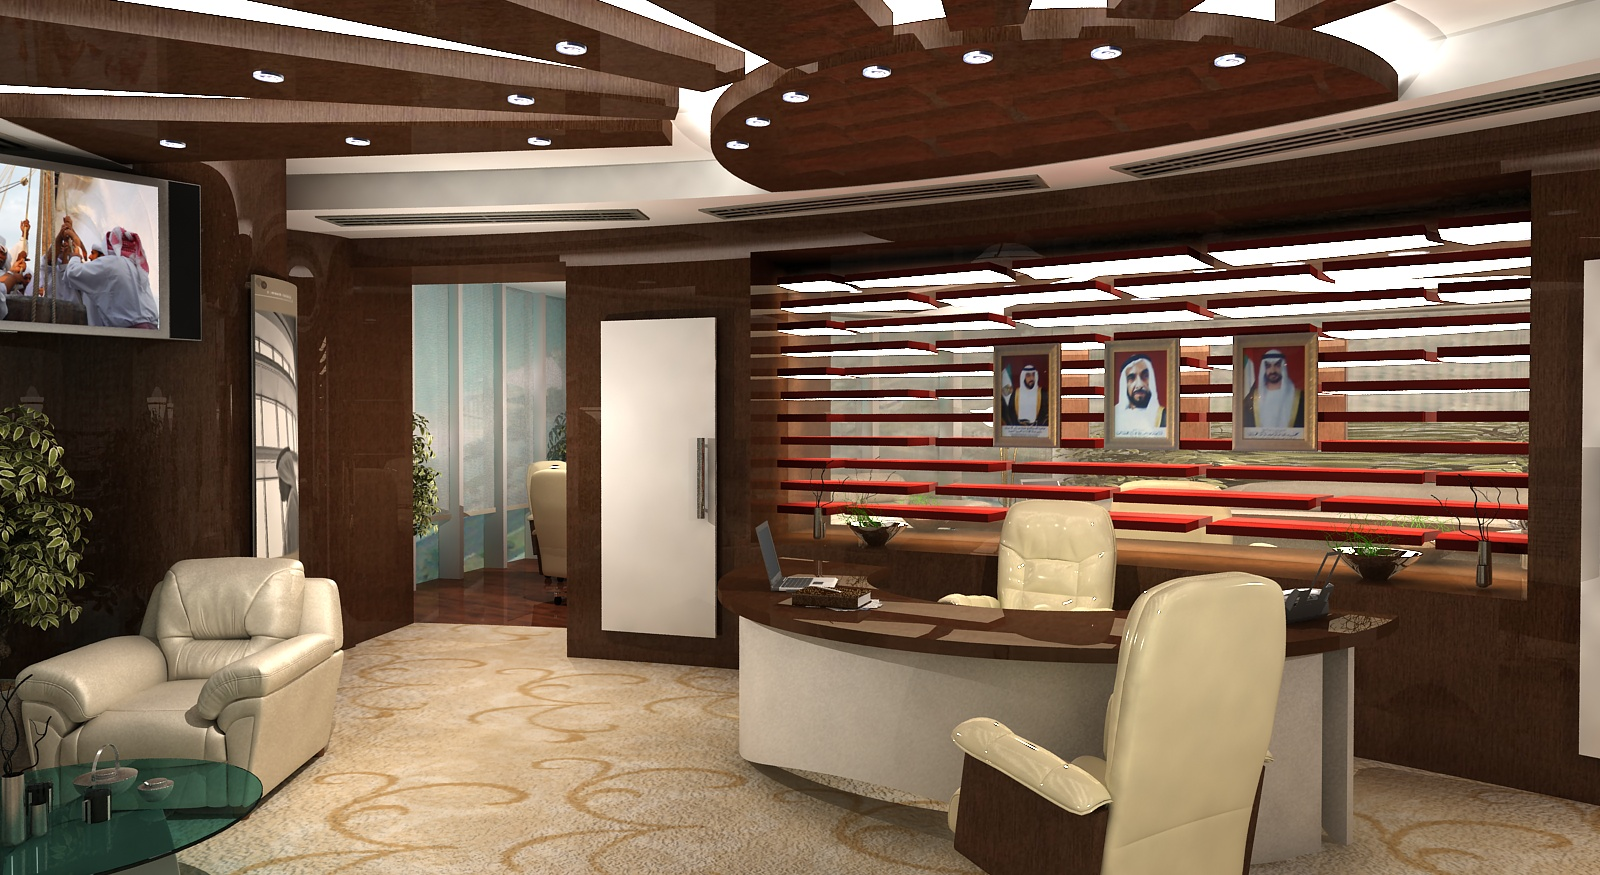 Gurooji design adia ceo 39 s office interior - Office interior ...